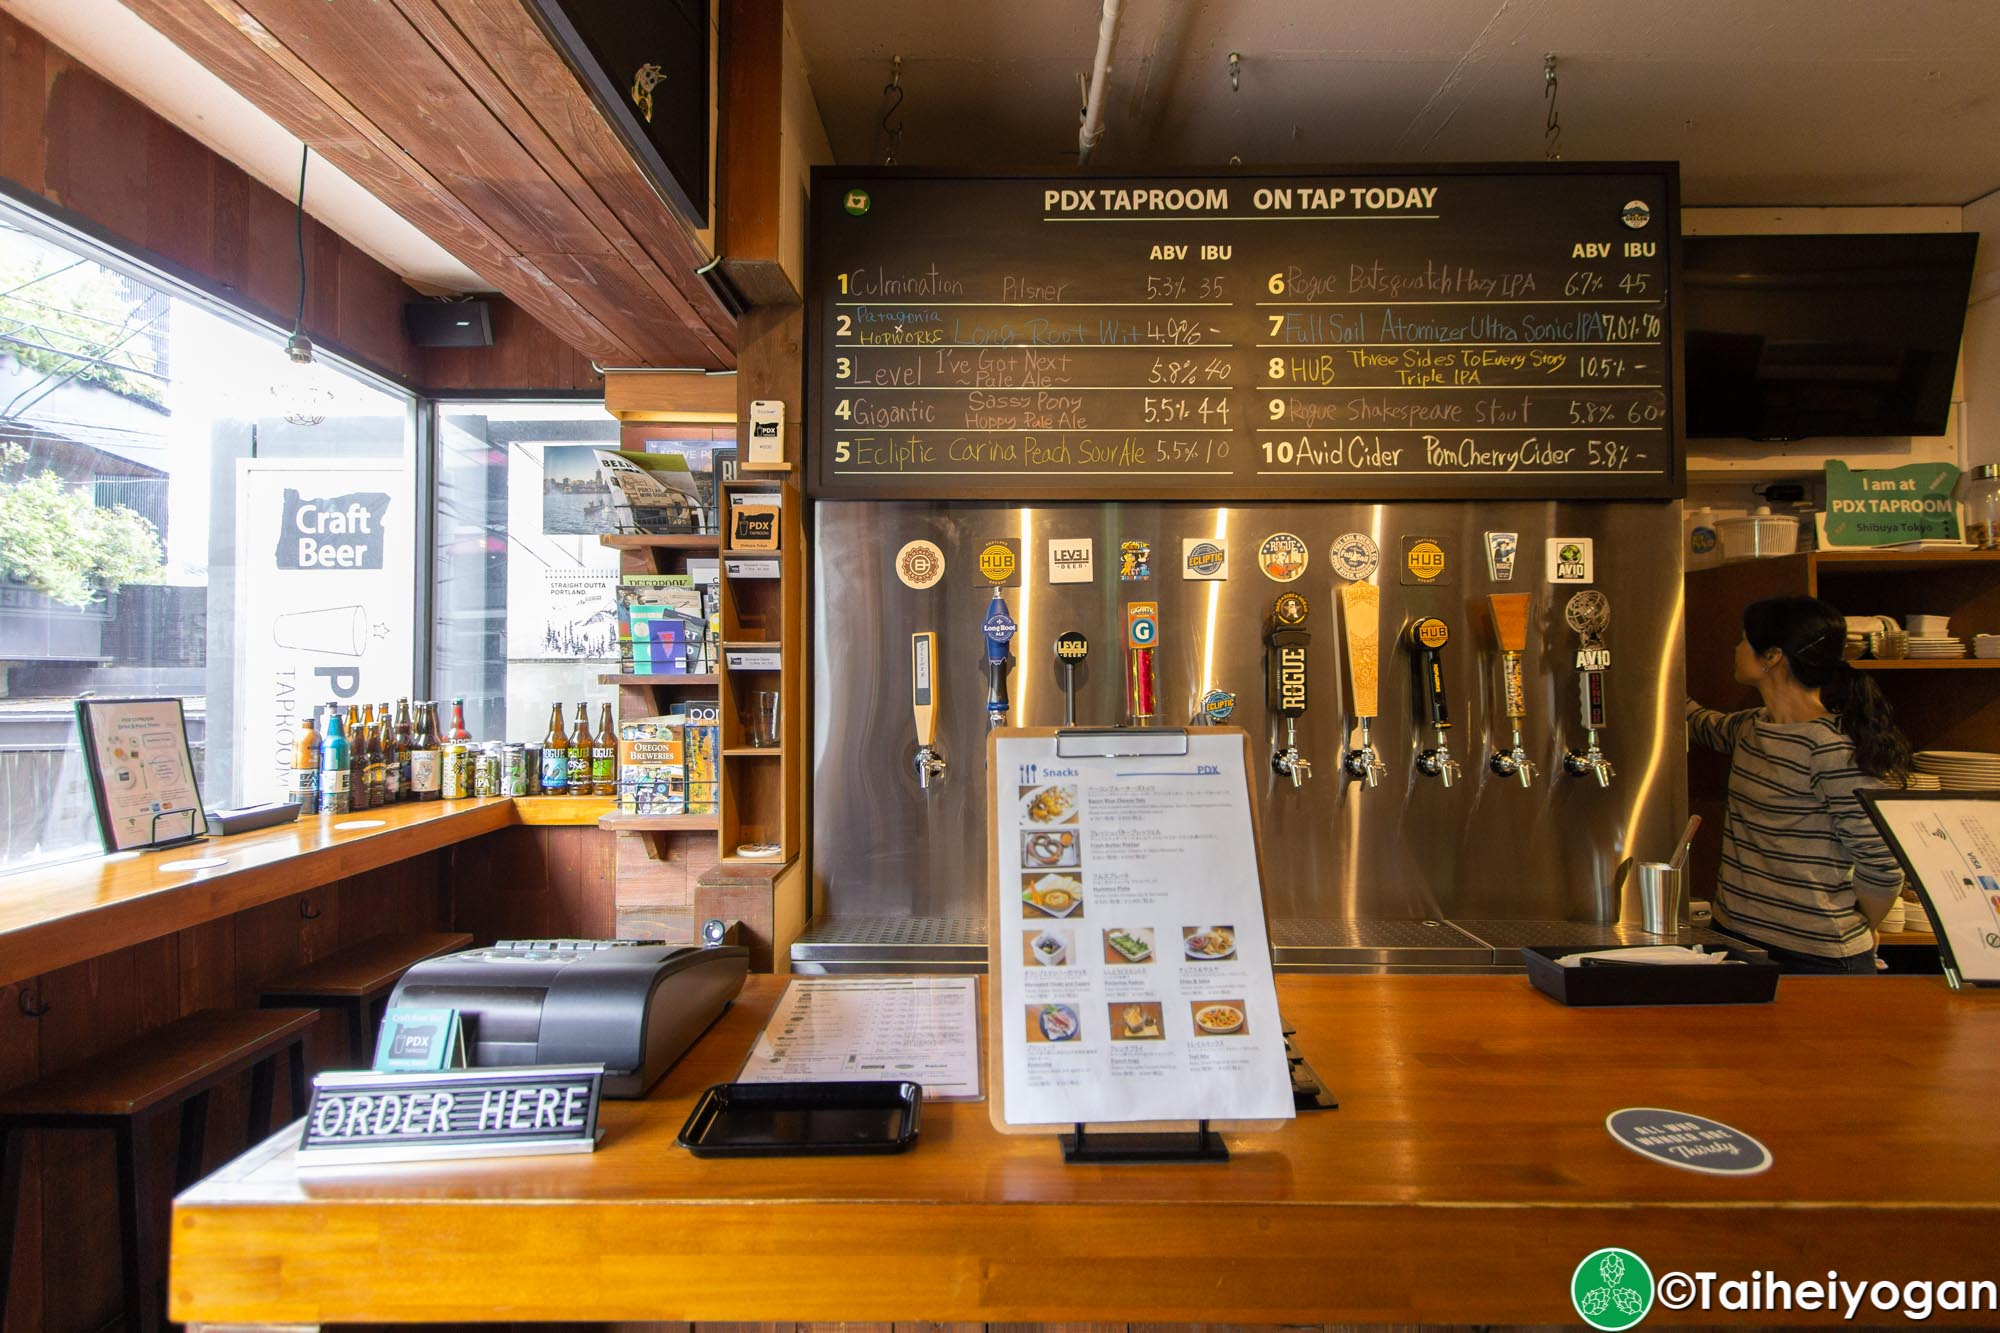 PDX Taproom - Interior - Cashier